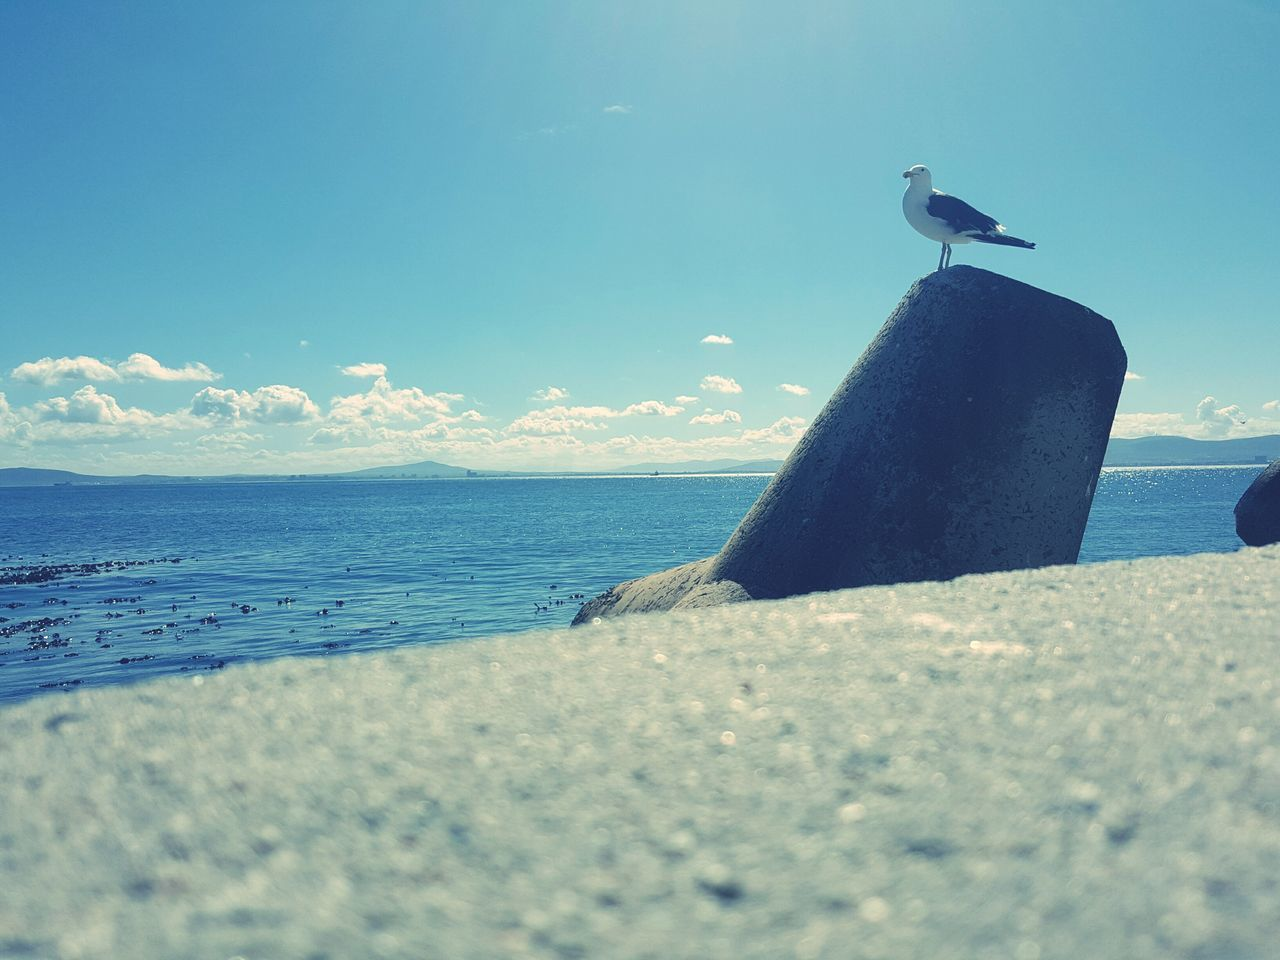 sea, water, bird, animals in the wild, one animal, animal themes, nature, day, perching, animal wildlife, outdoors, no people, sky, beauty in nature, seagull, horizon over water, beach, retaining wall